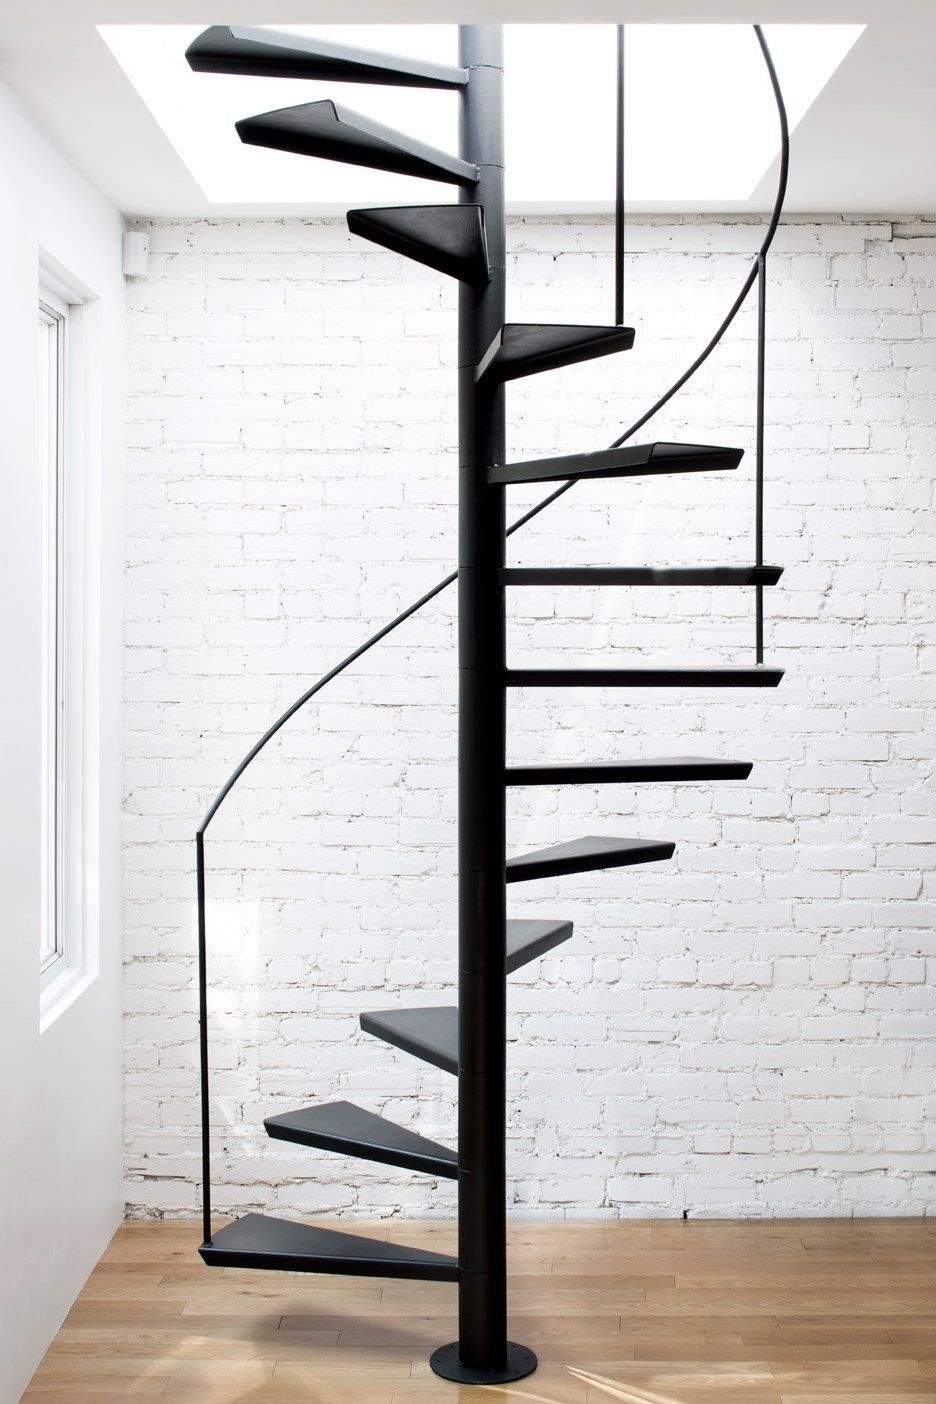 The 13 Types Of Staircases That You Need To Know   12 Ft Spiral Staircase   Stair Treads   Steel   Mylen Stairs   Staircase Kit   Stair Kit